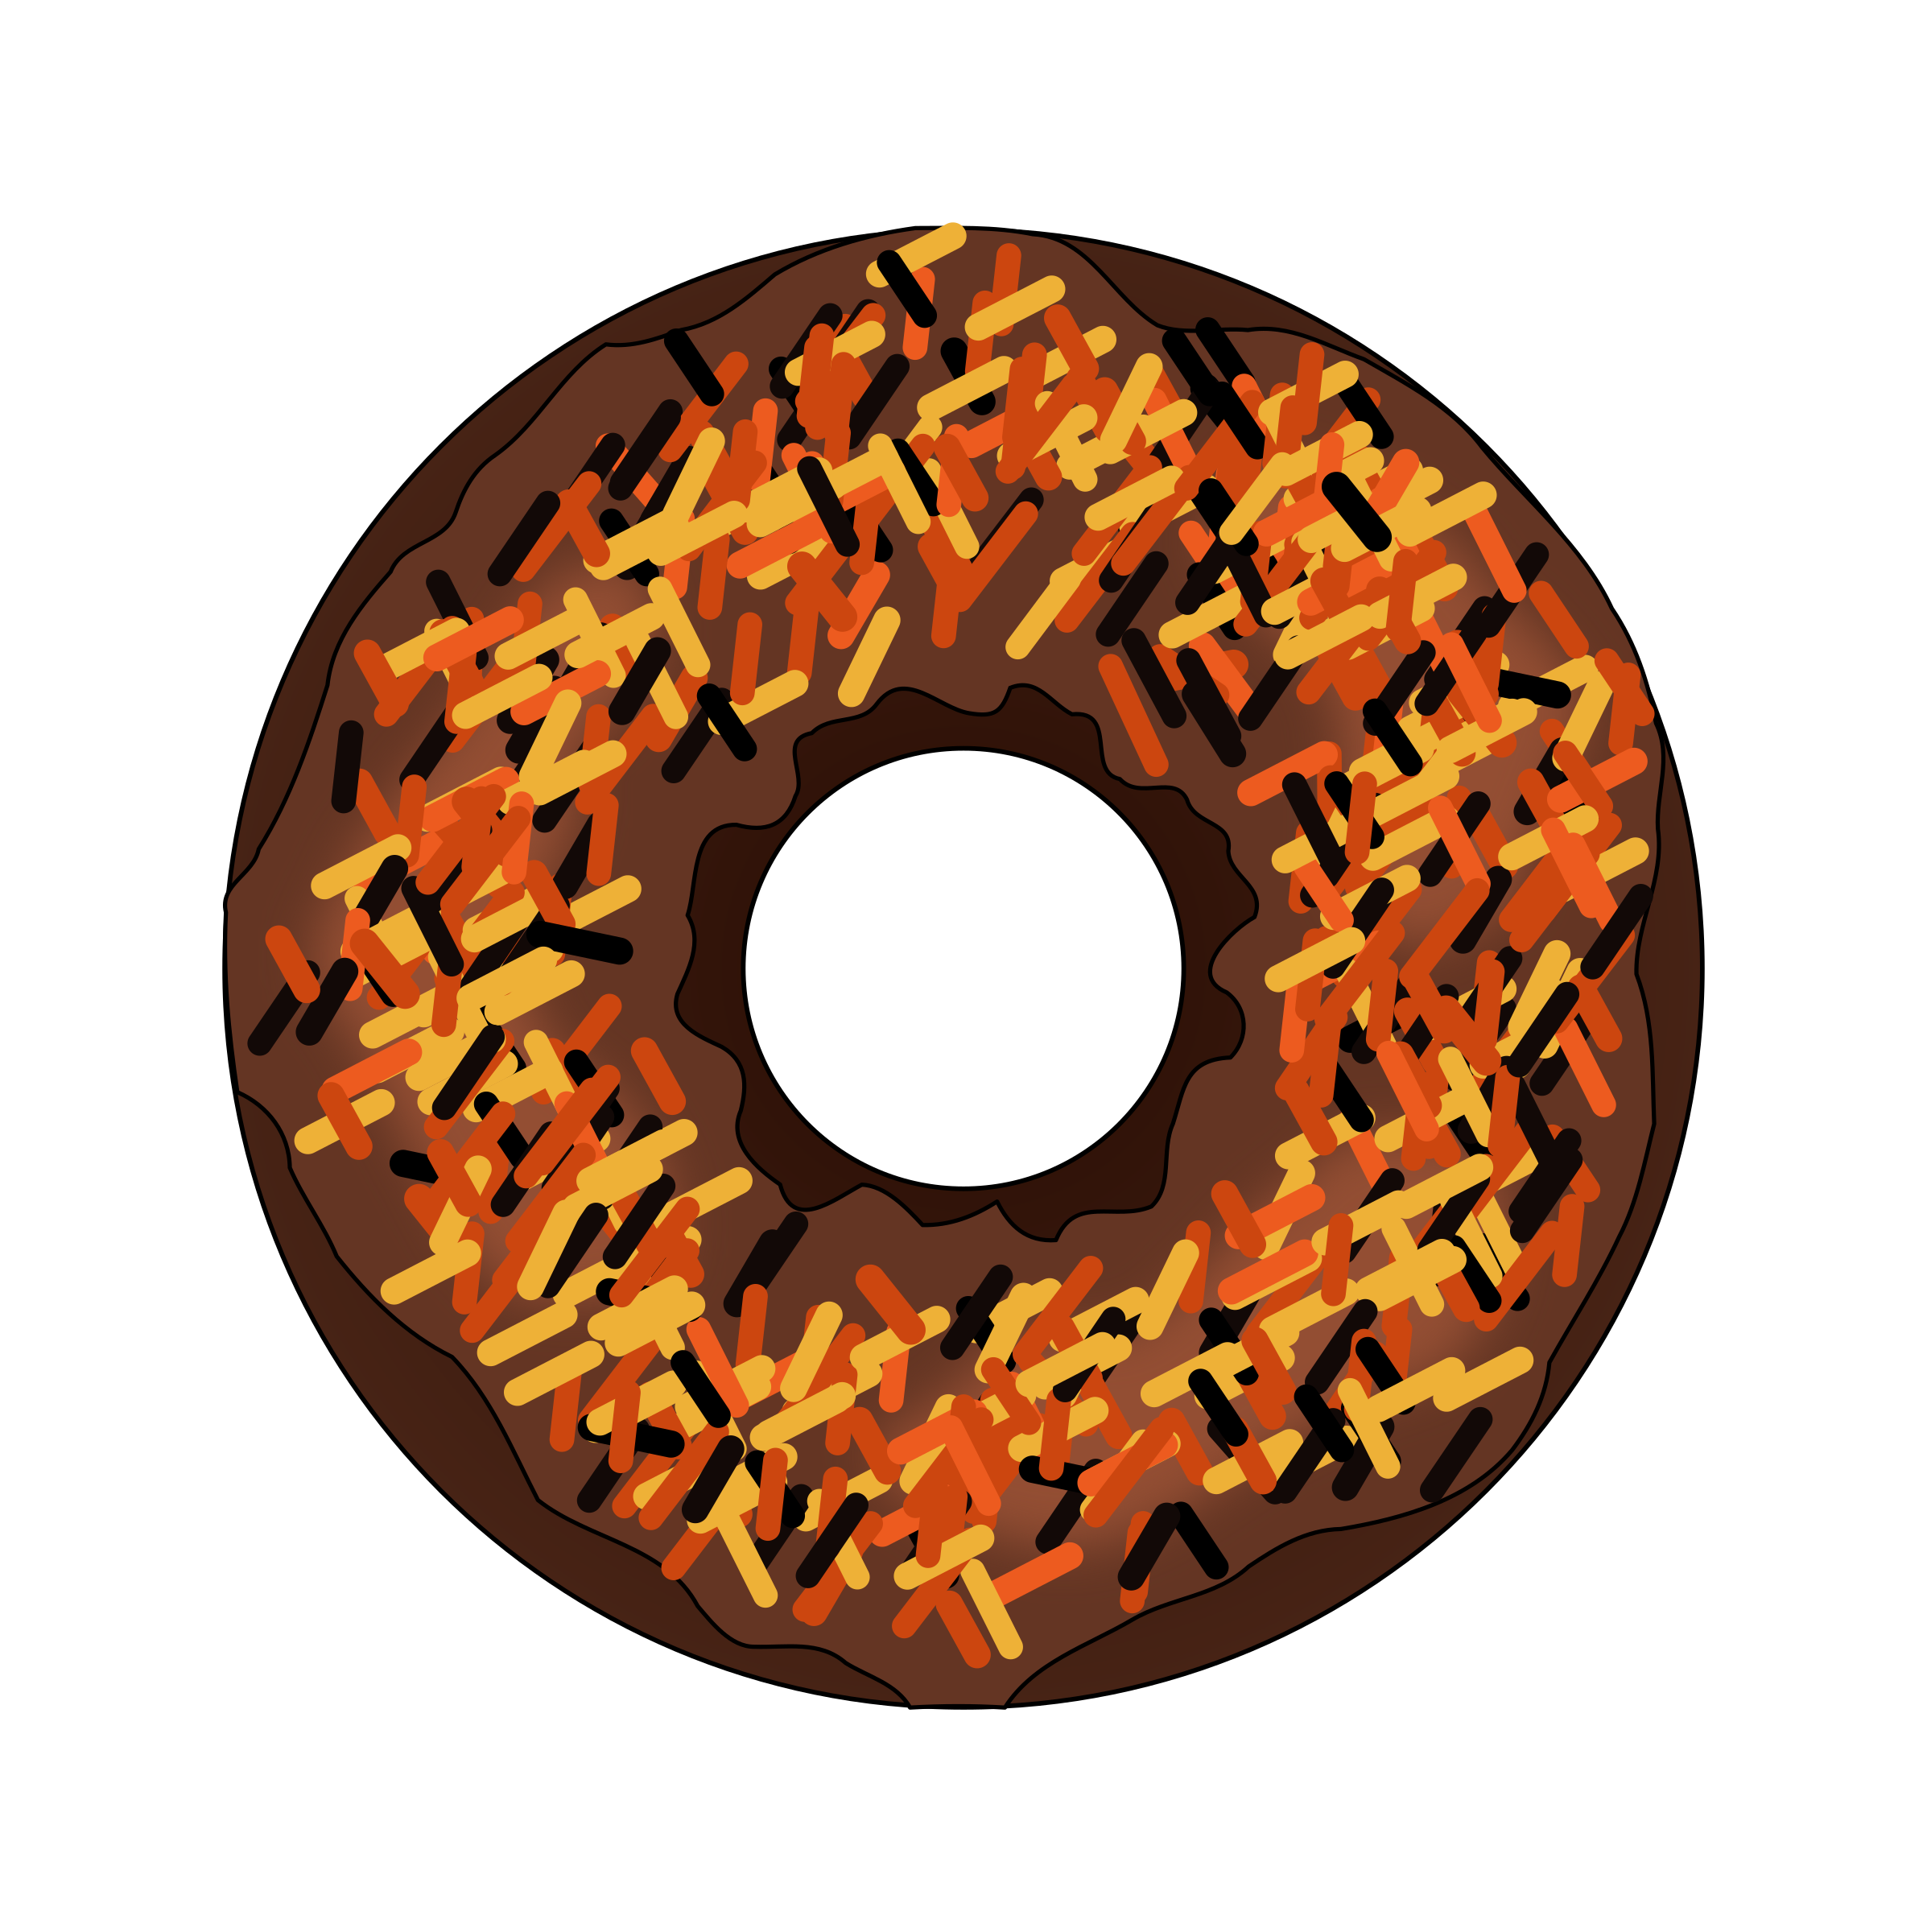 Donuts clipart small. Fall or halloween donut